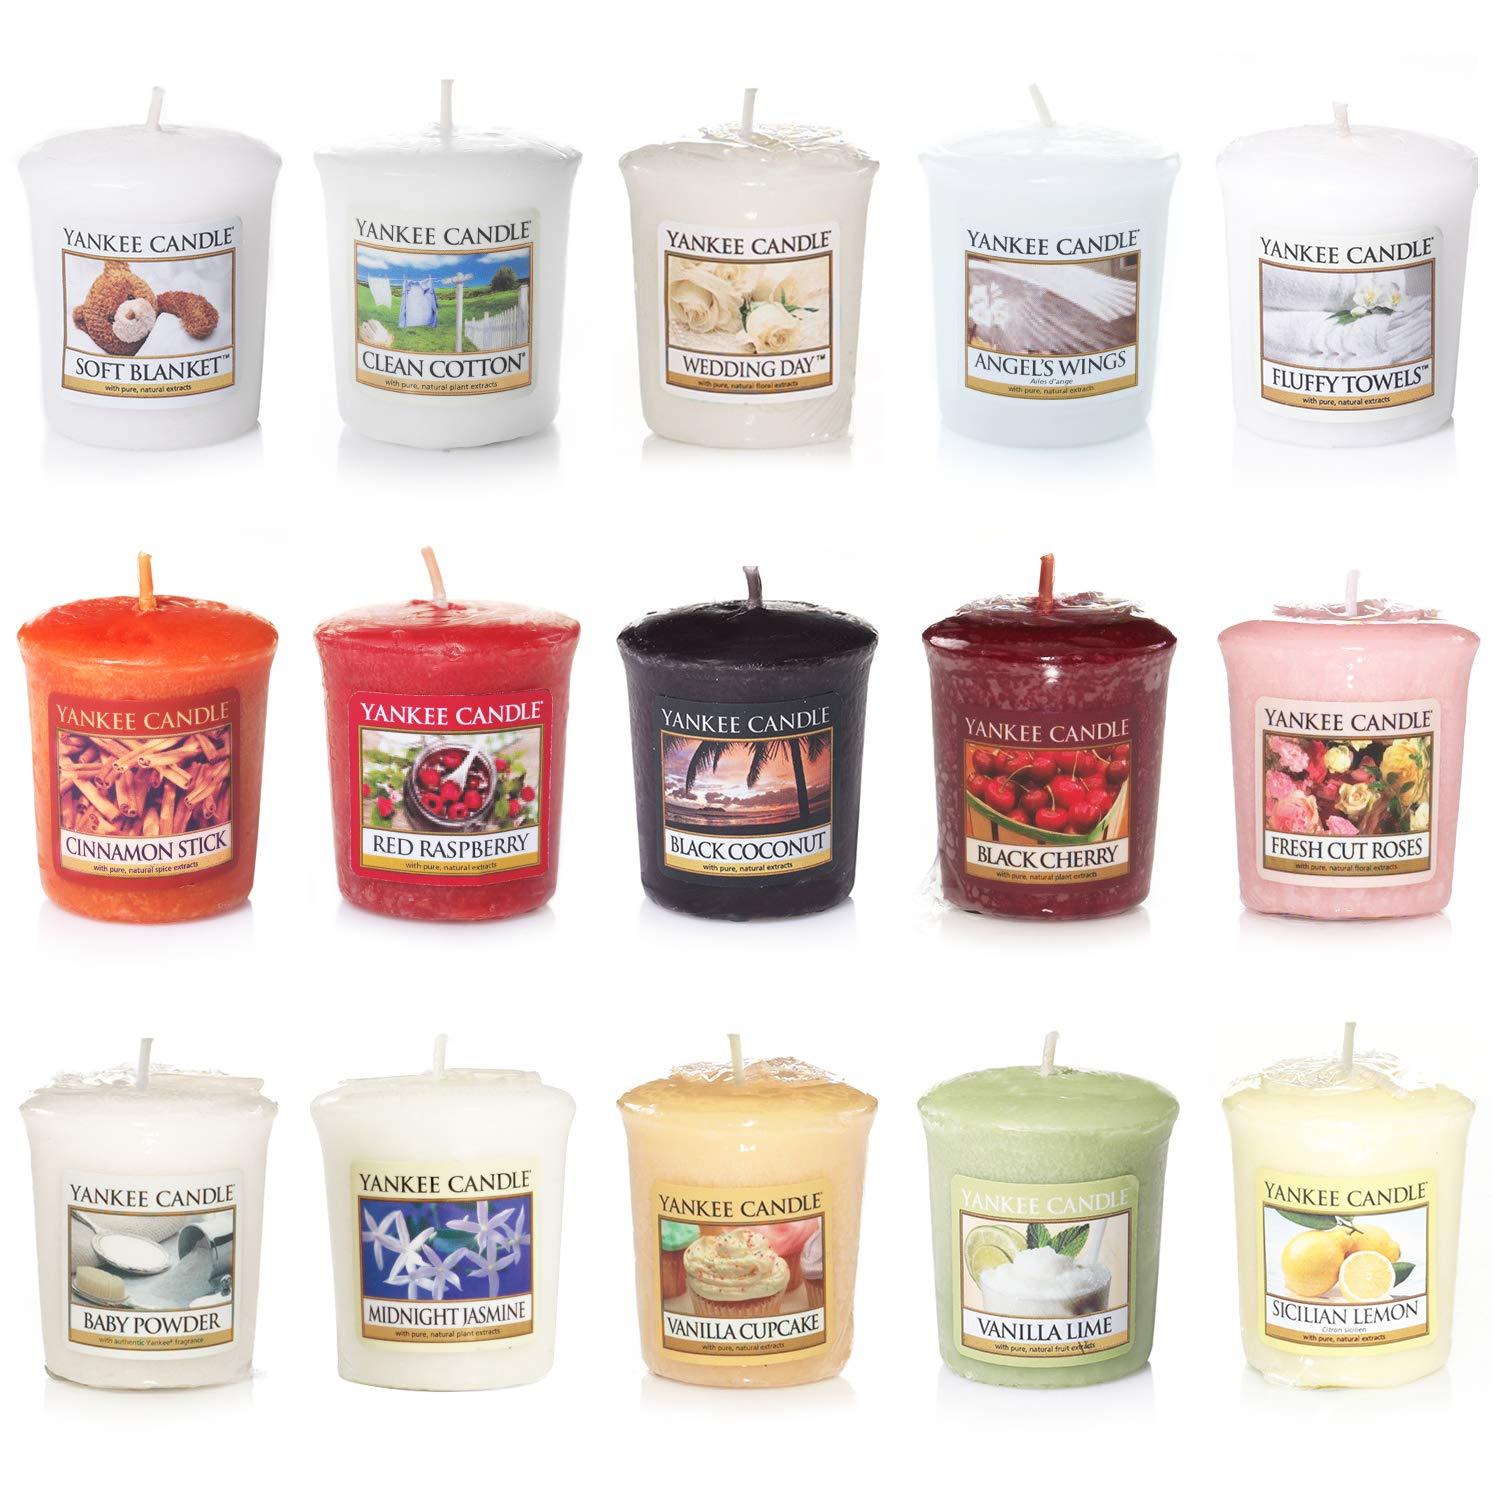 Yankee Candle Votive Value Bundle with 15 Votive Scented Candles